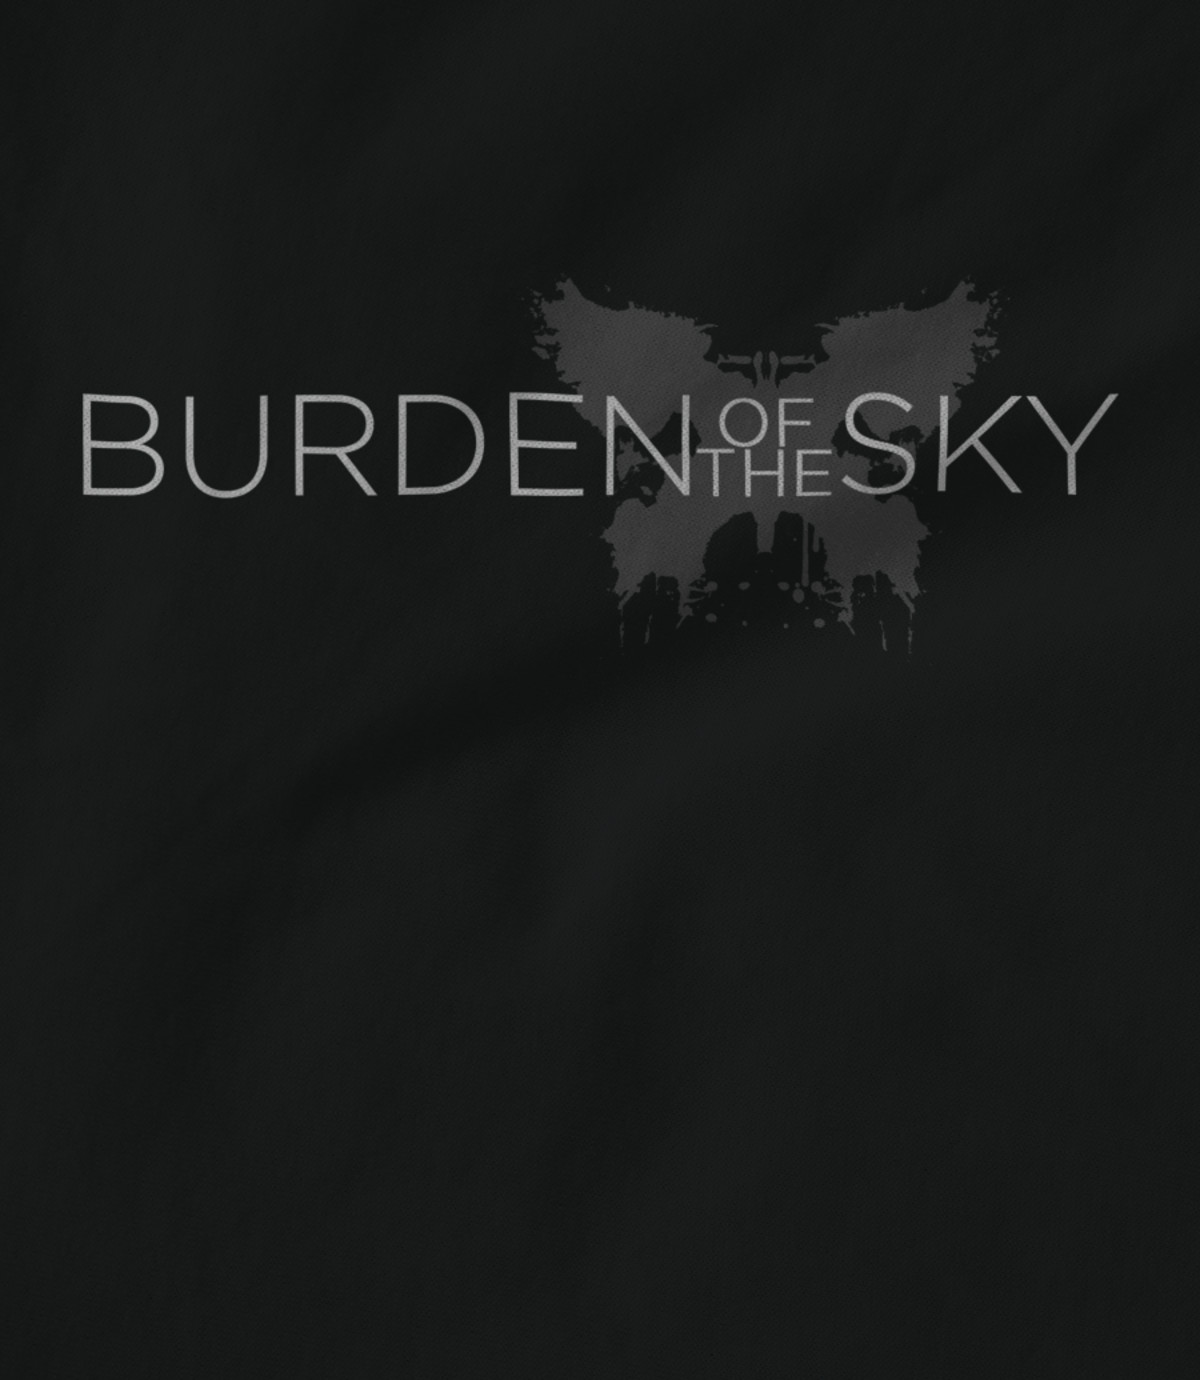 Burden of the sky core   black 1525728388